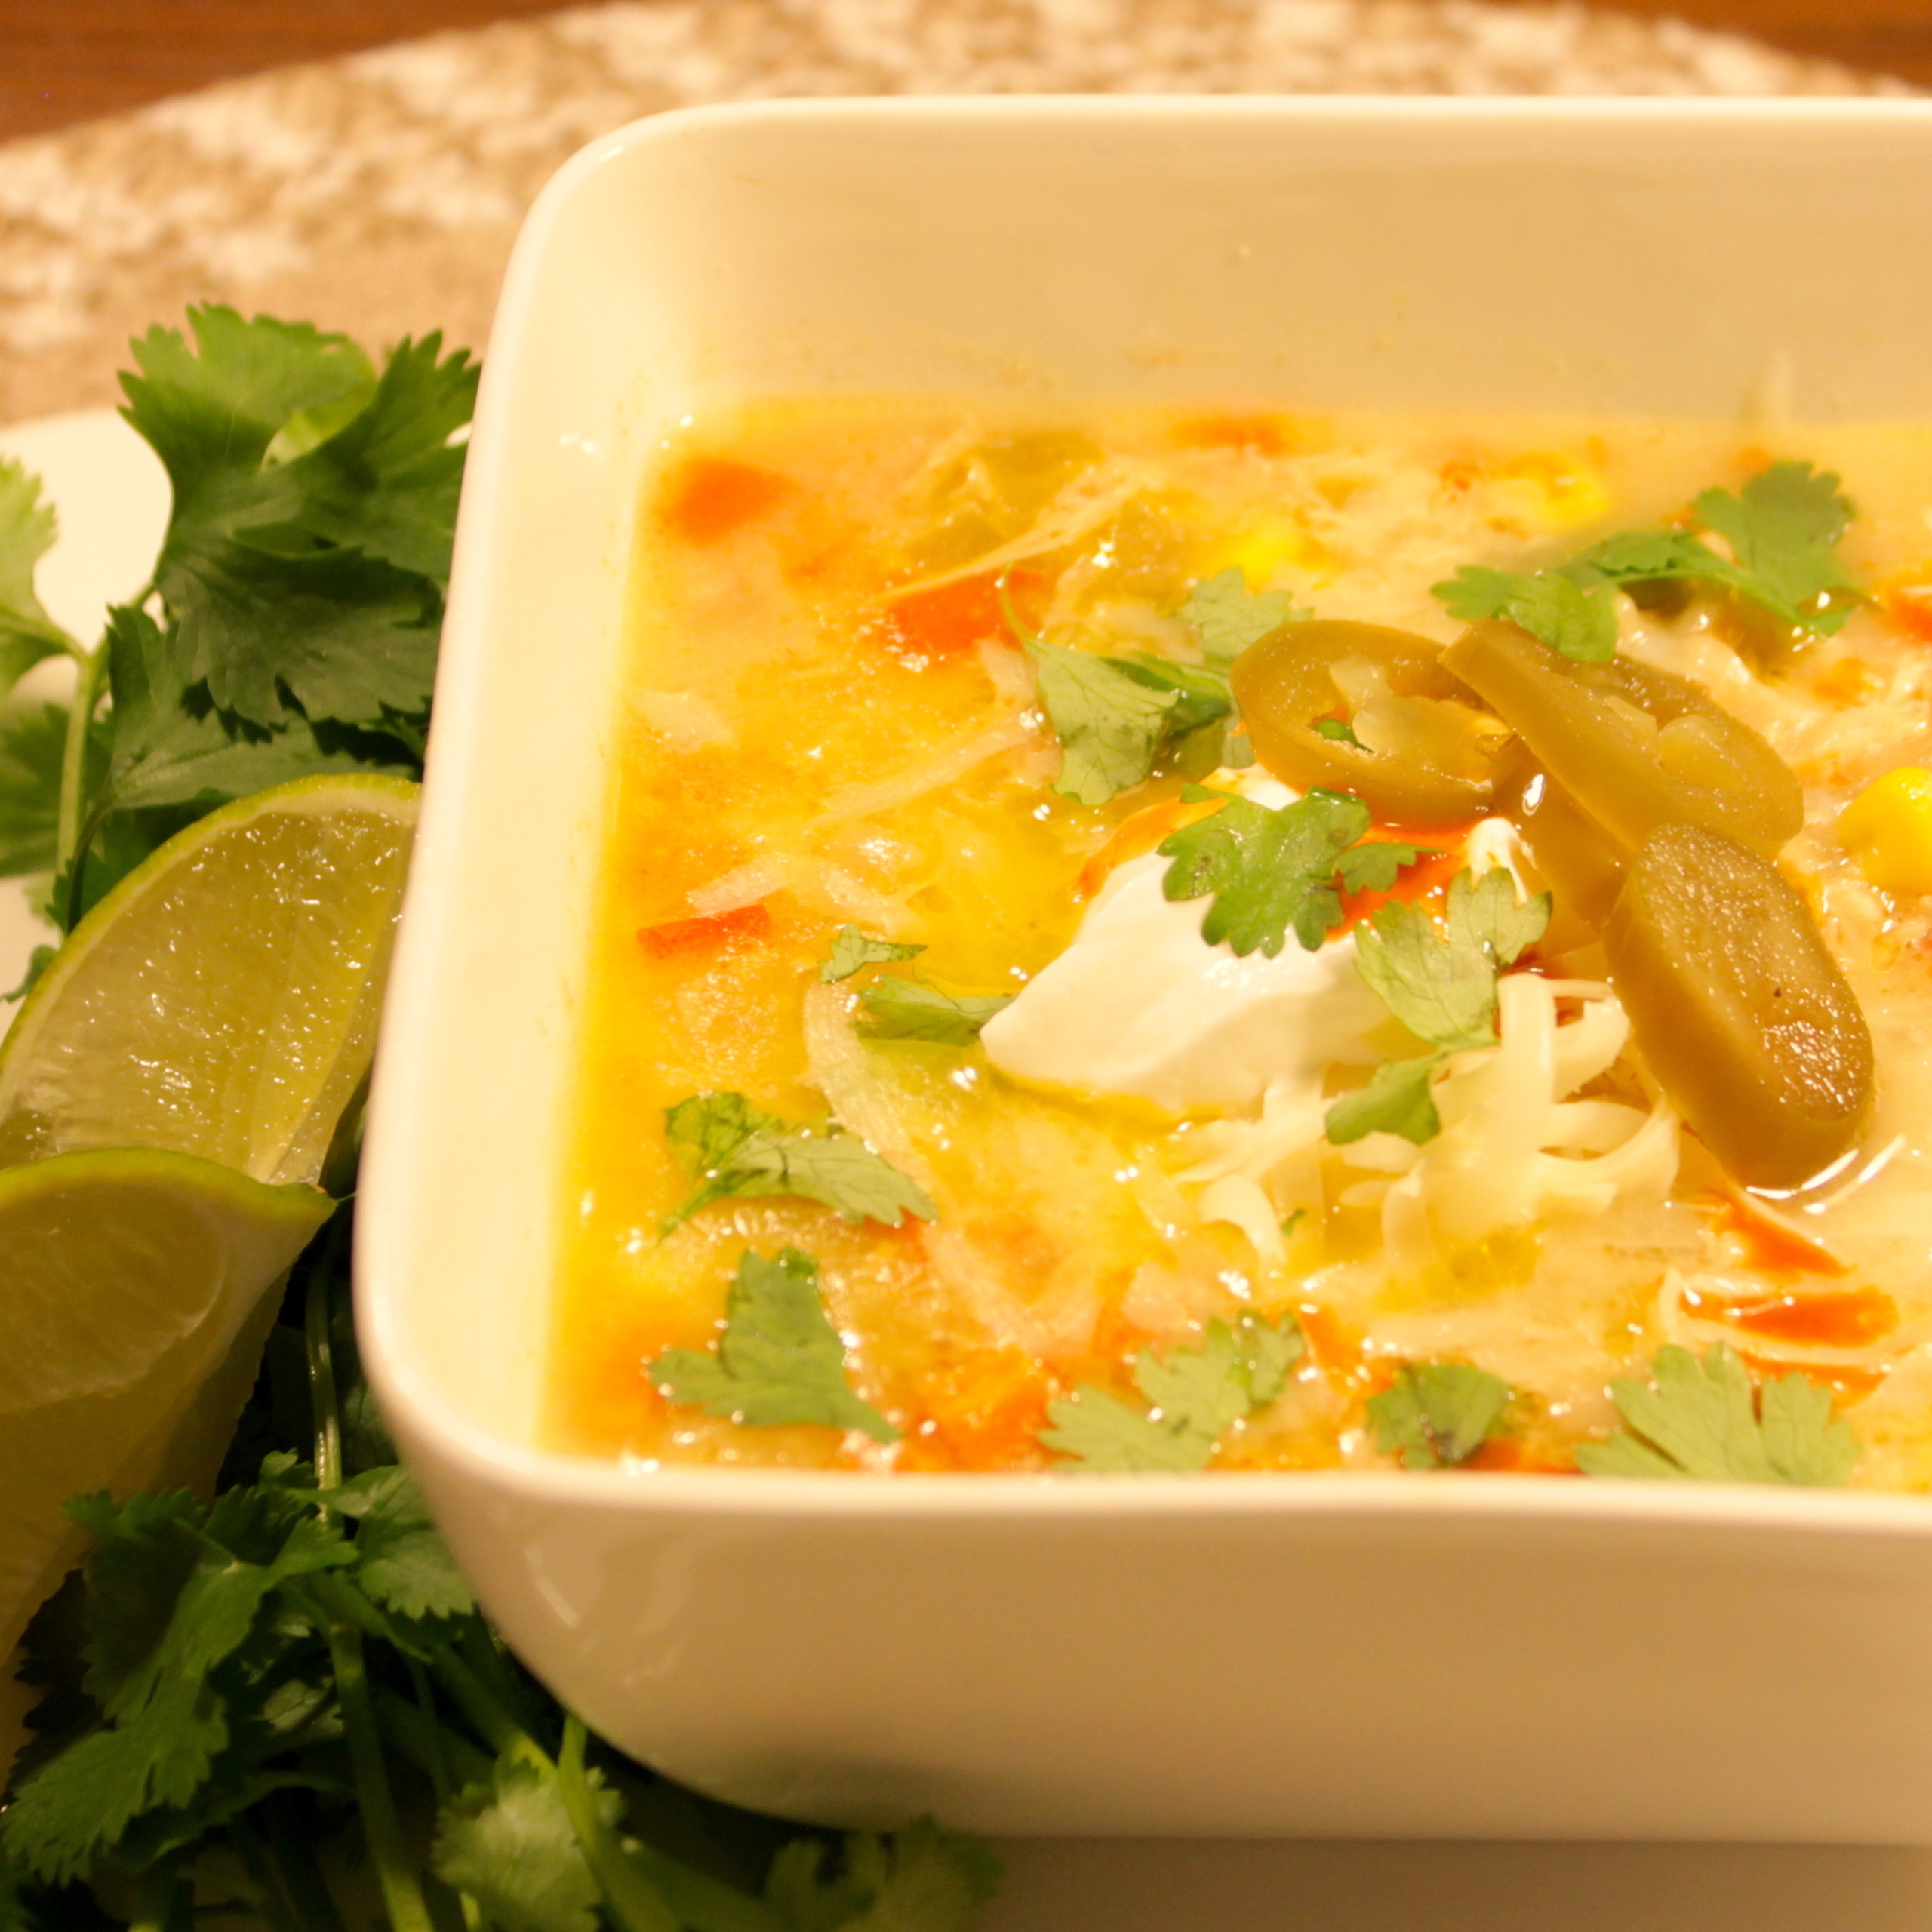 bowl of soup with cilantro and lime on side